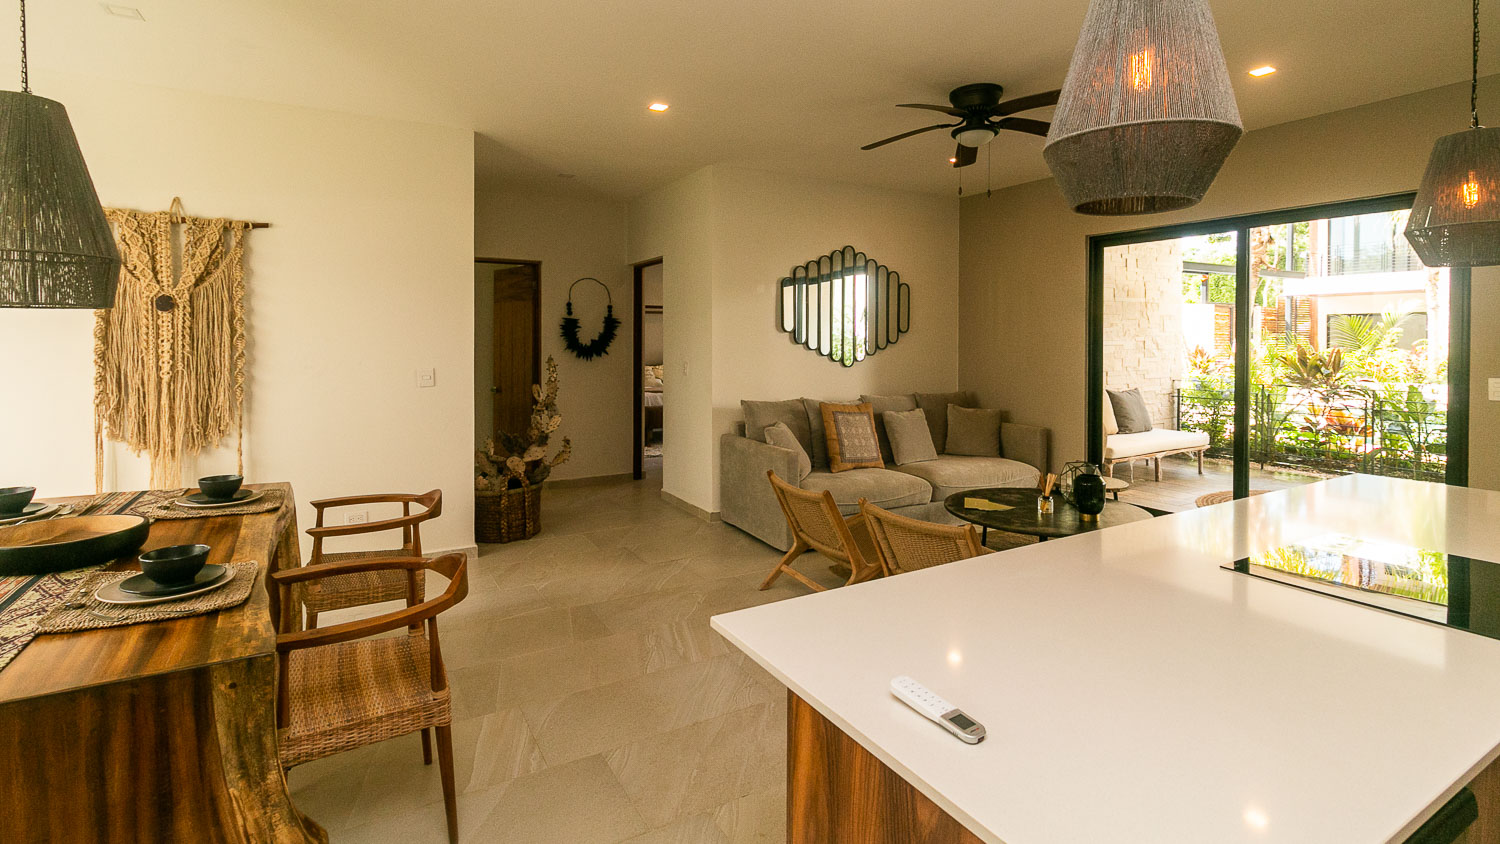 Condos for Sale in Tulum Naj Kiin_Holiday Gift Guide